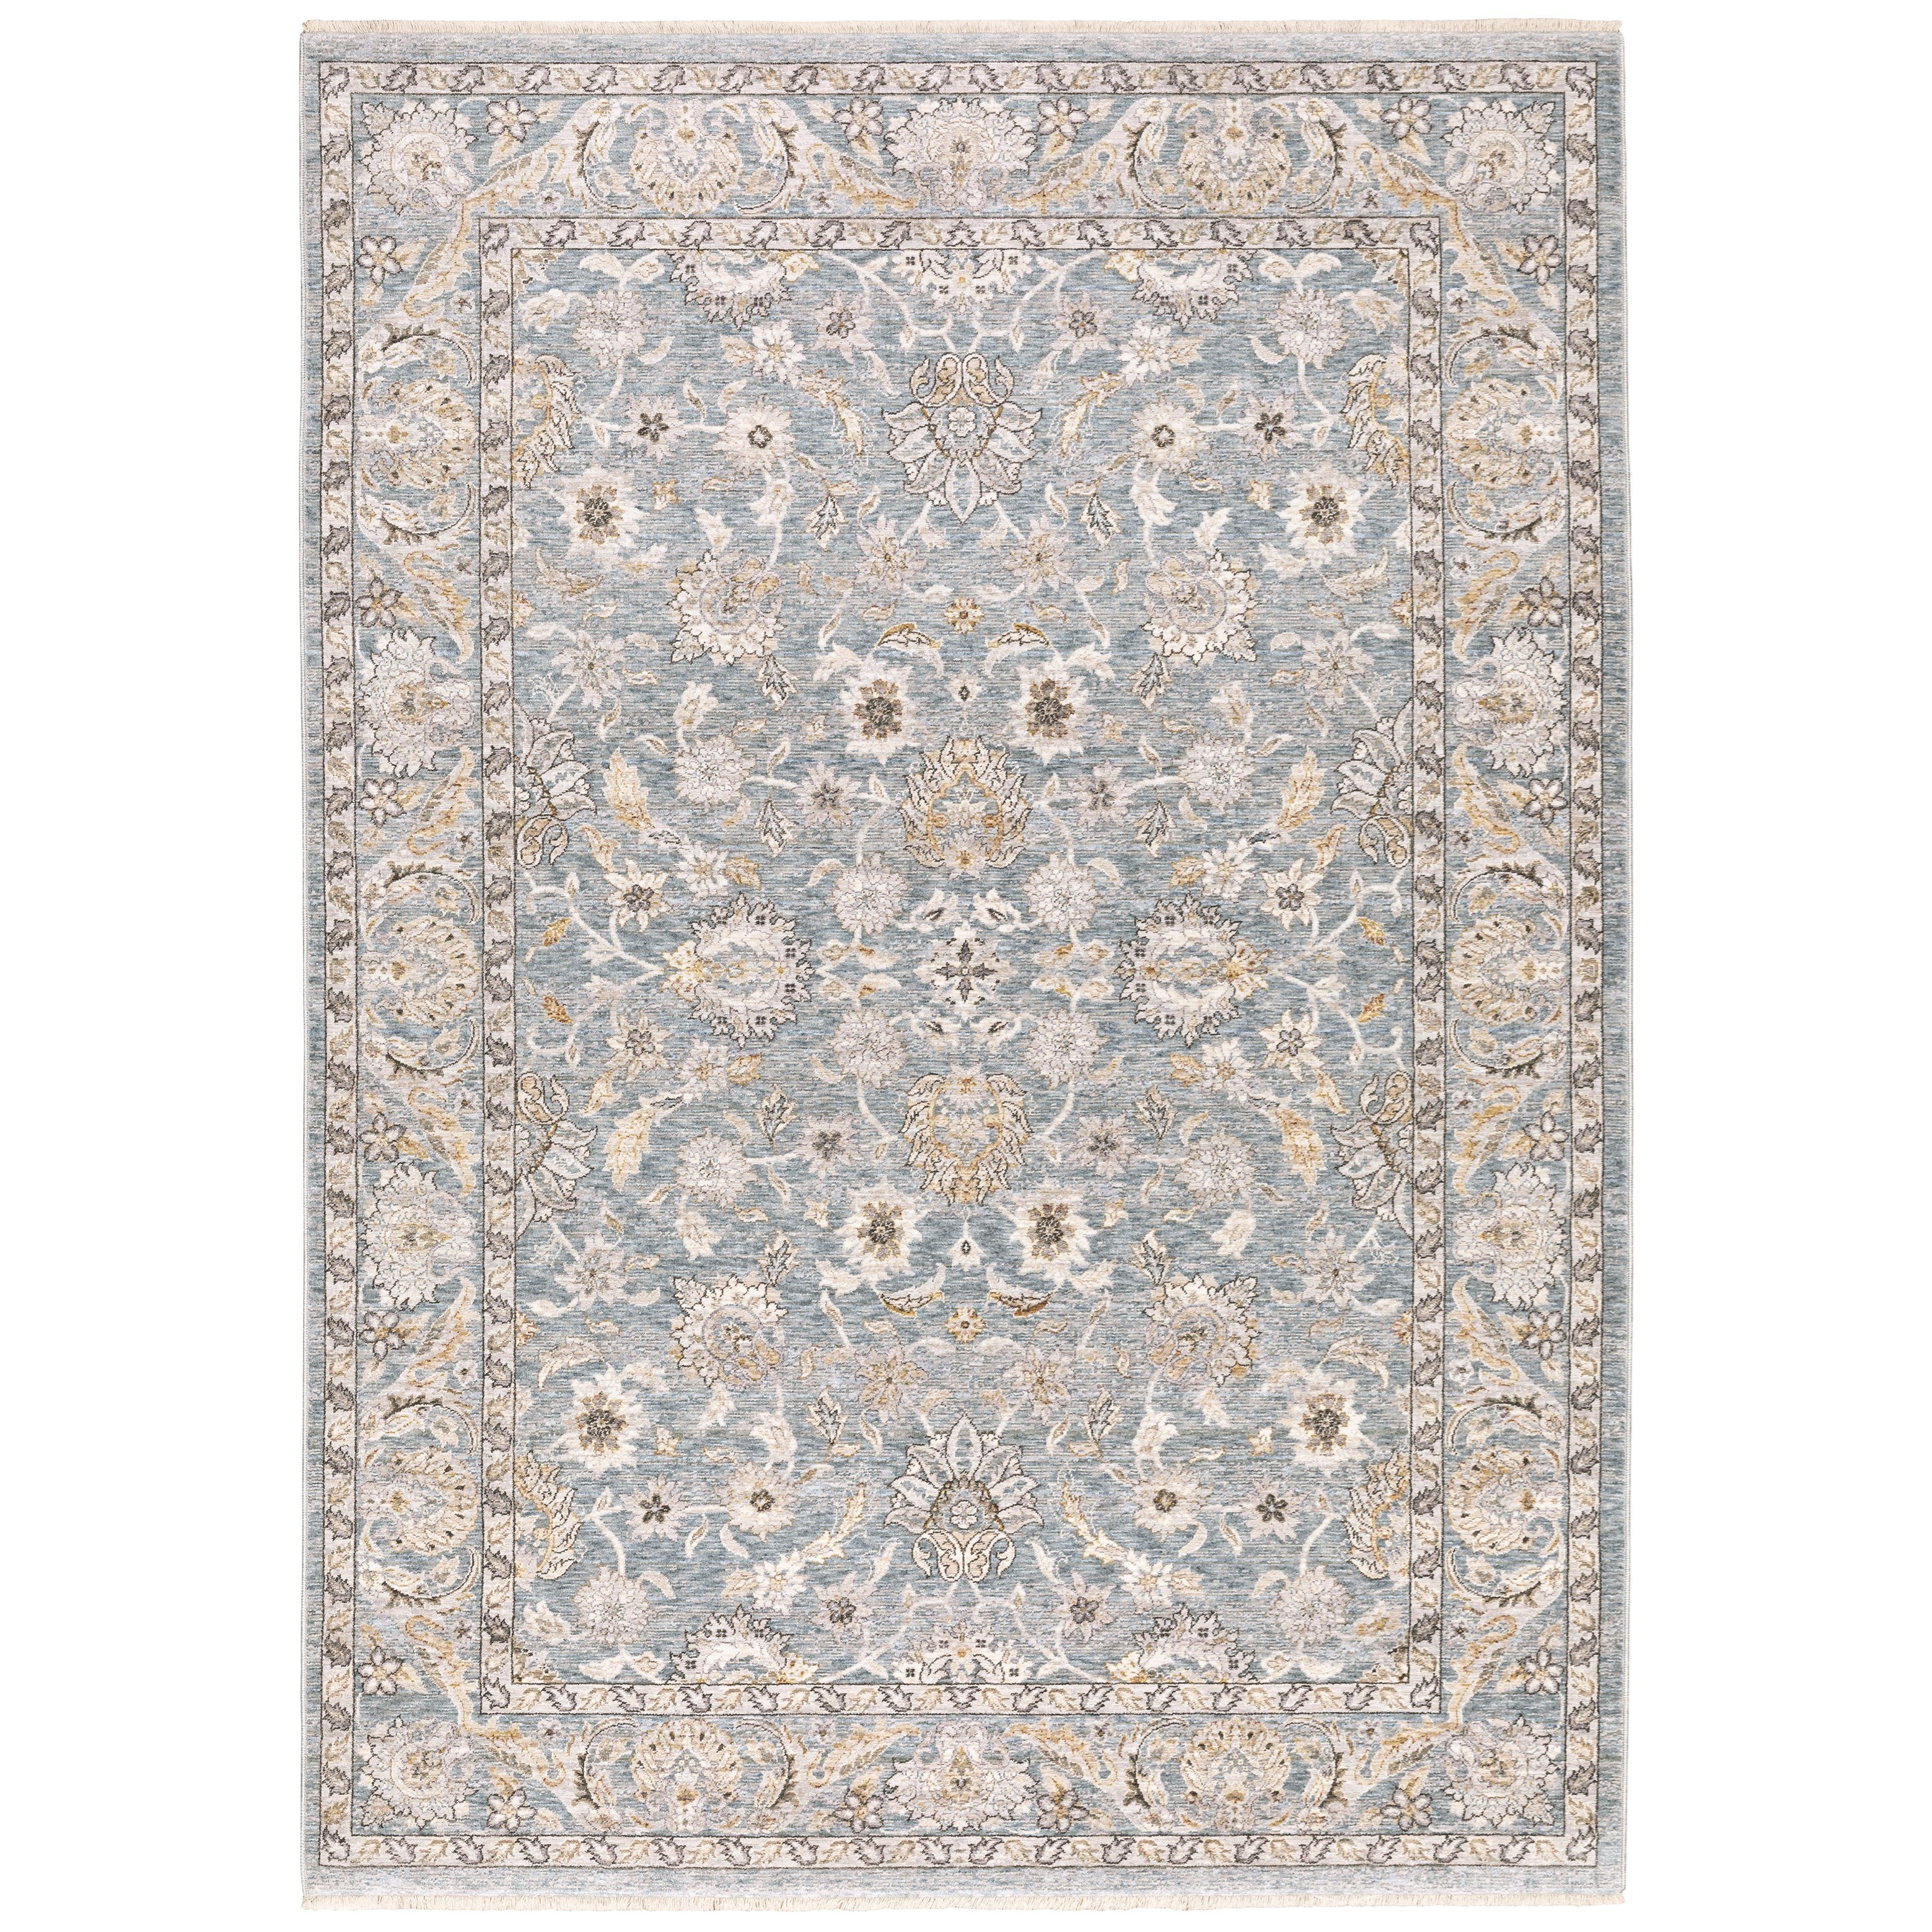 "Maharaja 9'10"" X 12'10"" Rectangle Rug by Oriental Weavers at Godby Home Furnishings"